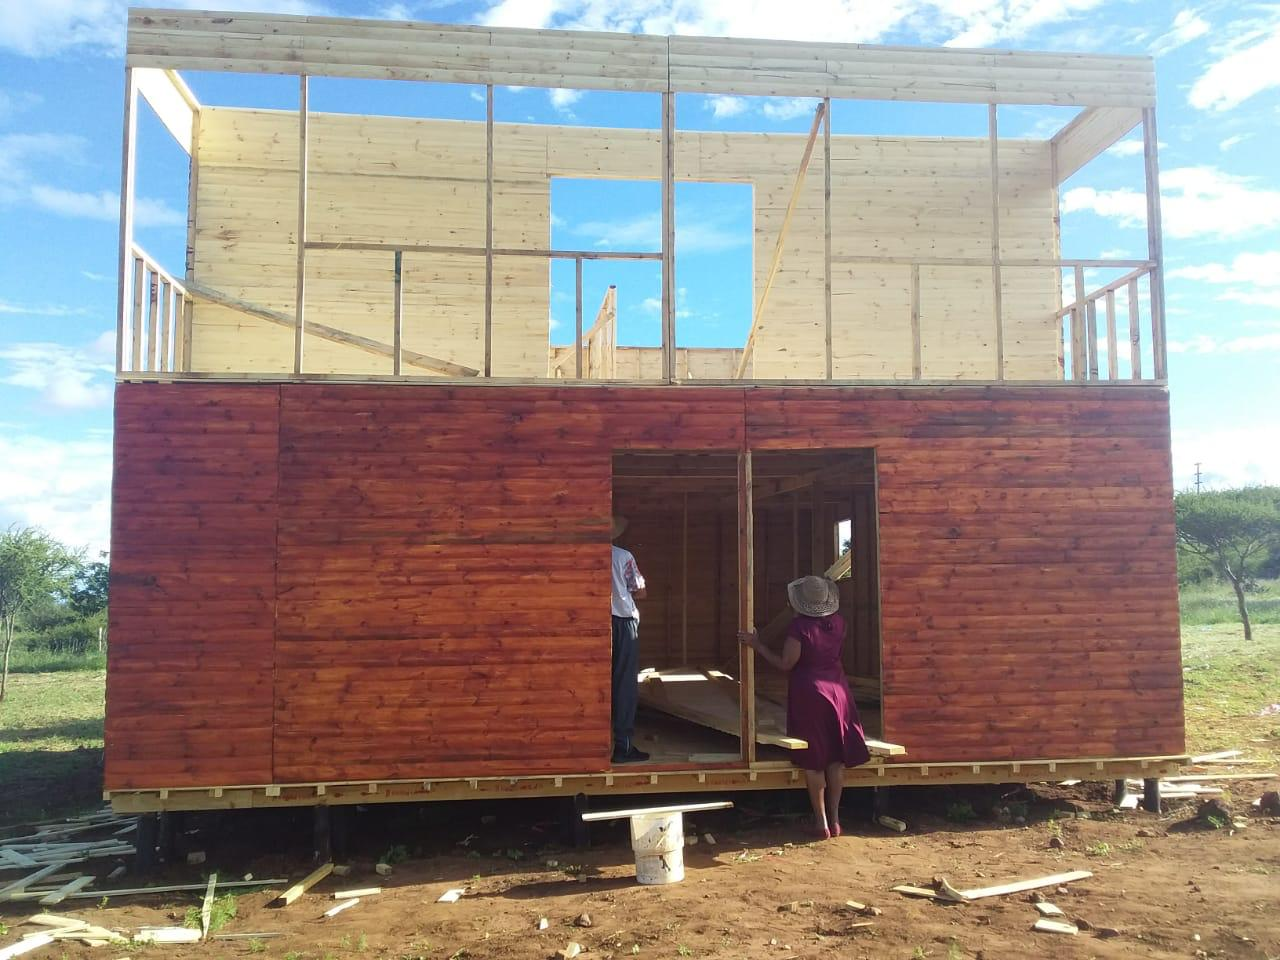 Piccaso Wendy : All types of Wendy Houses and Log Cabins at affordable prices